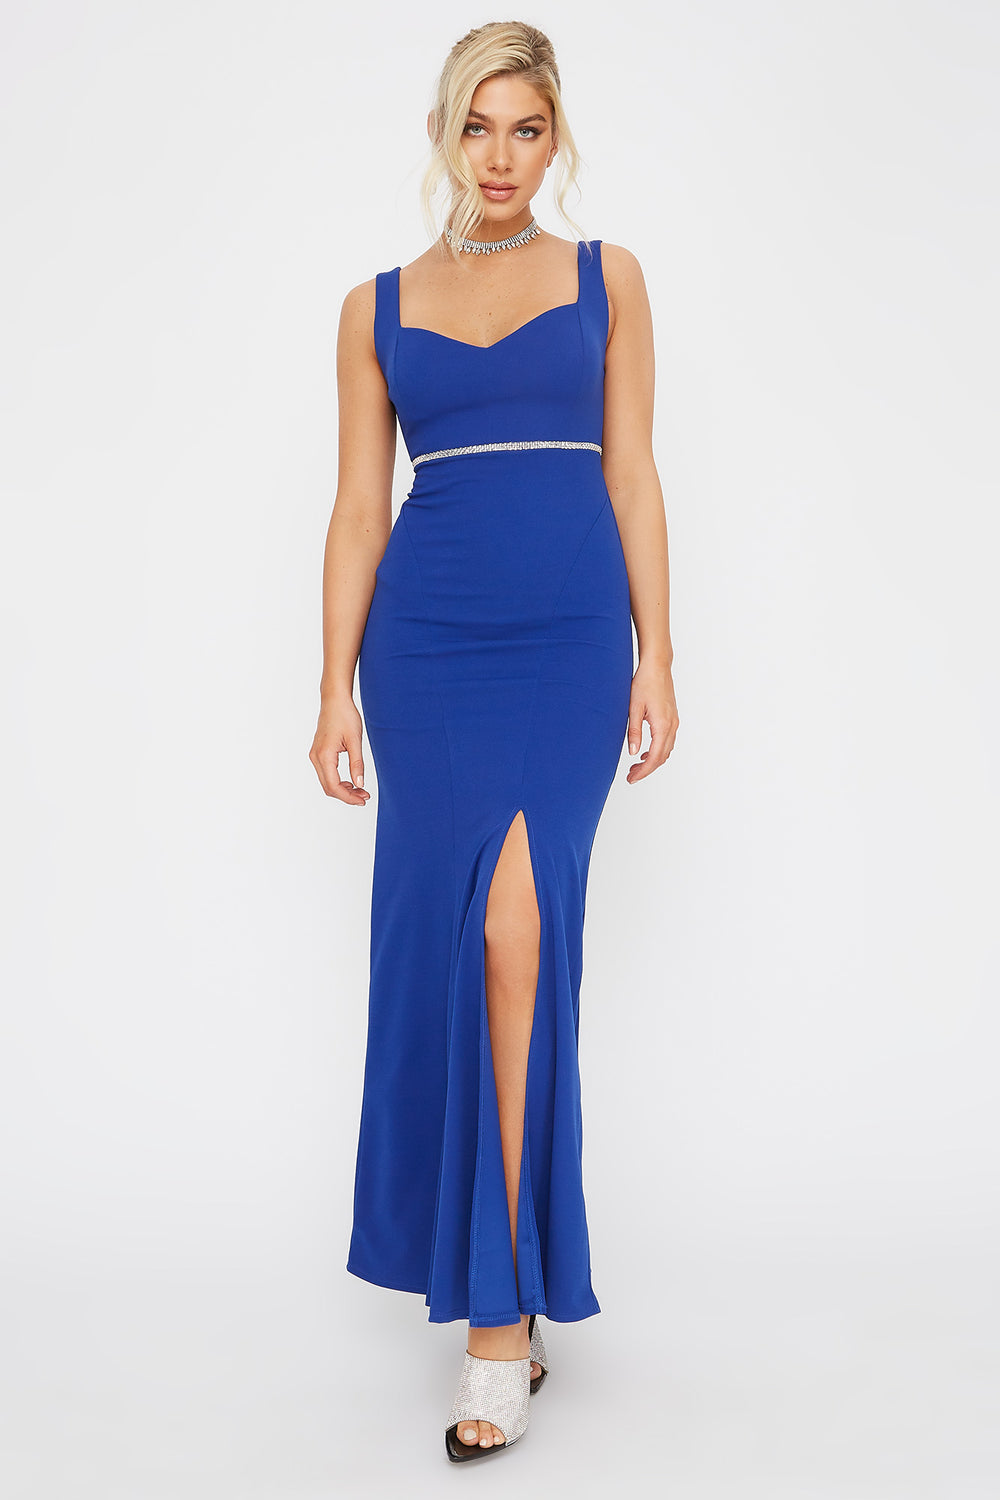 Rhinestone Belt Sweetheart Neck Maxi Dress Royal Blue